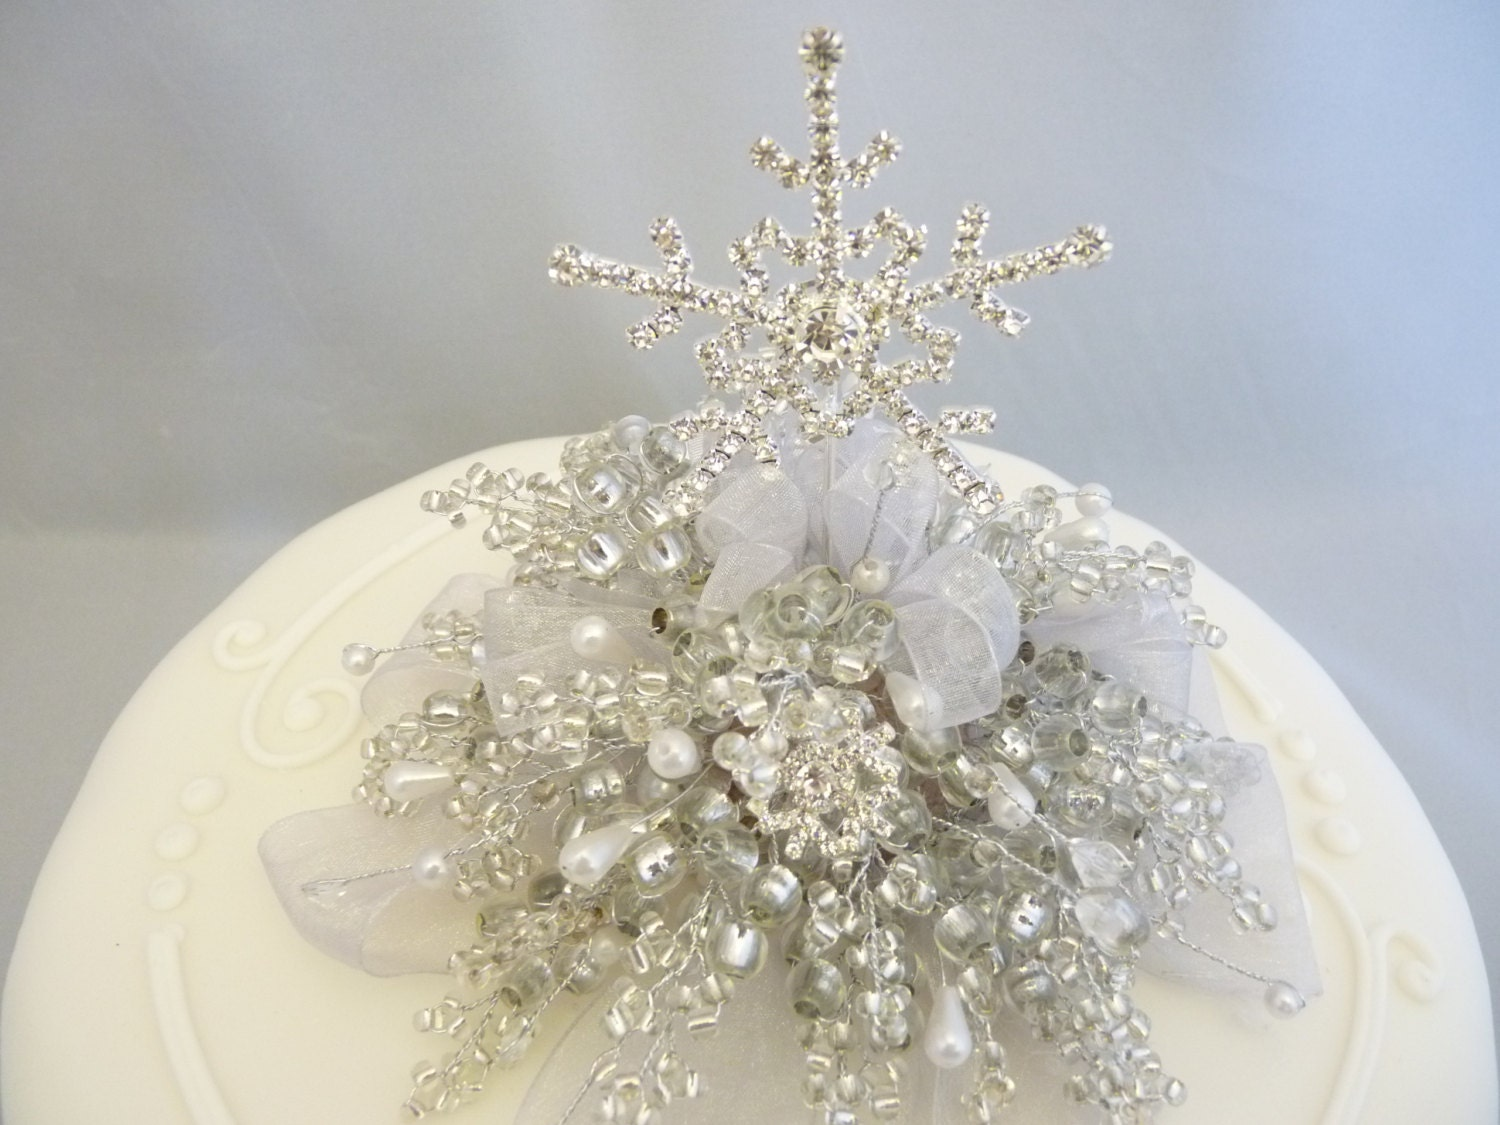 Snowflake cake decoration, Snowflake cake topper, Winter wedding ...